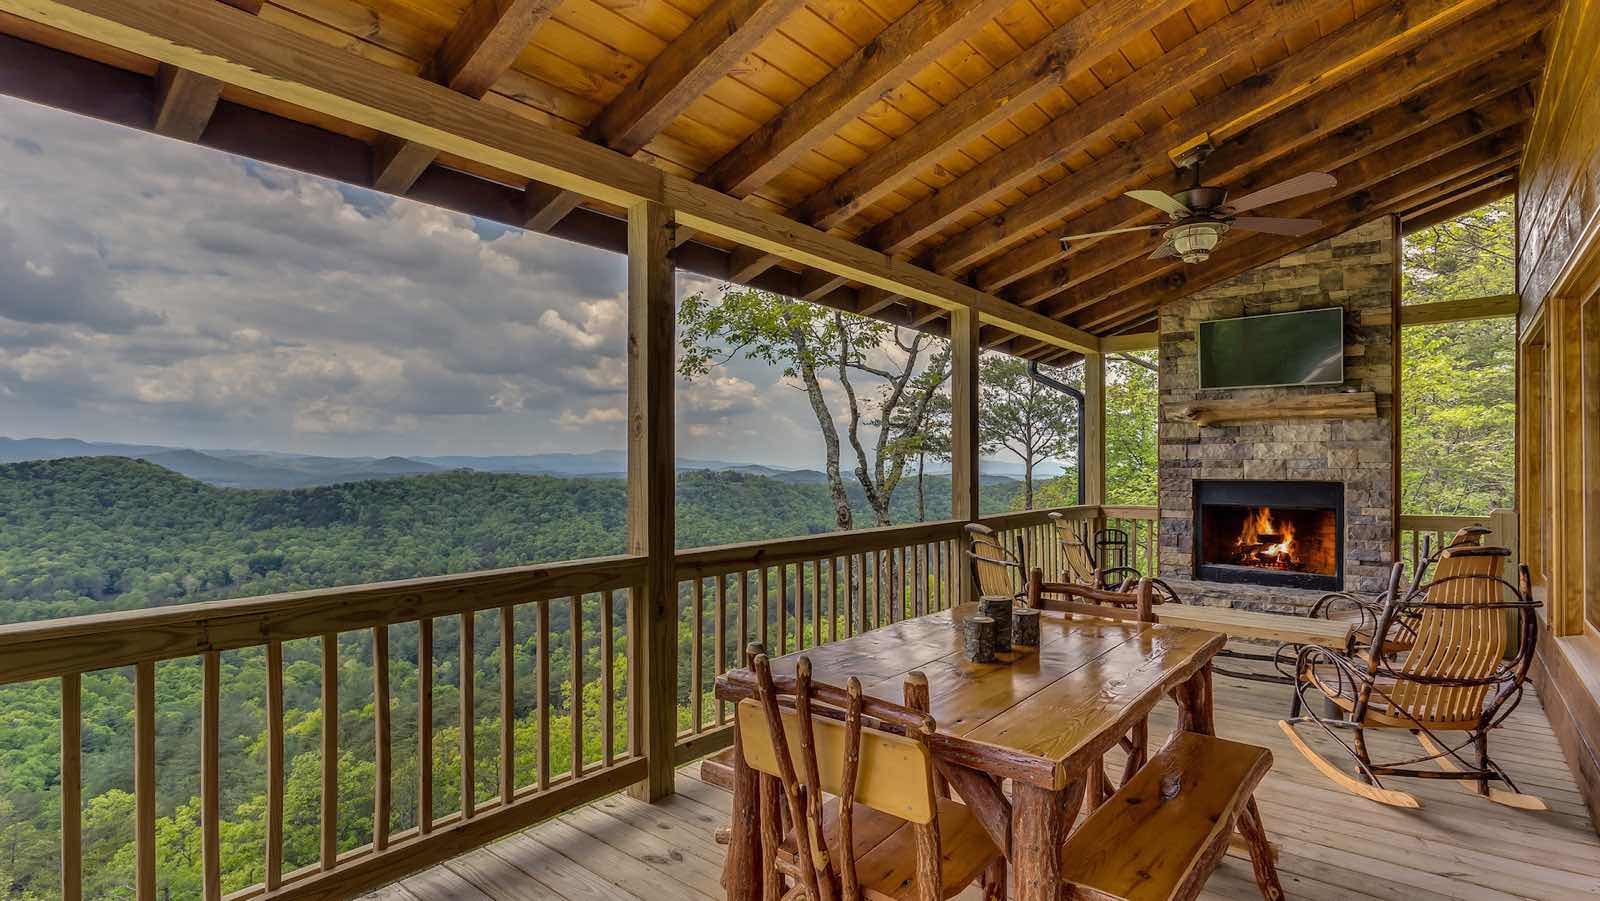 ga accommodations blue ridge vacation mountains rentals tuckaway watch cabin cabins rental